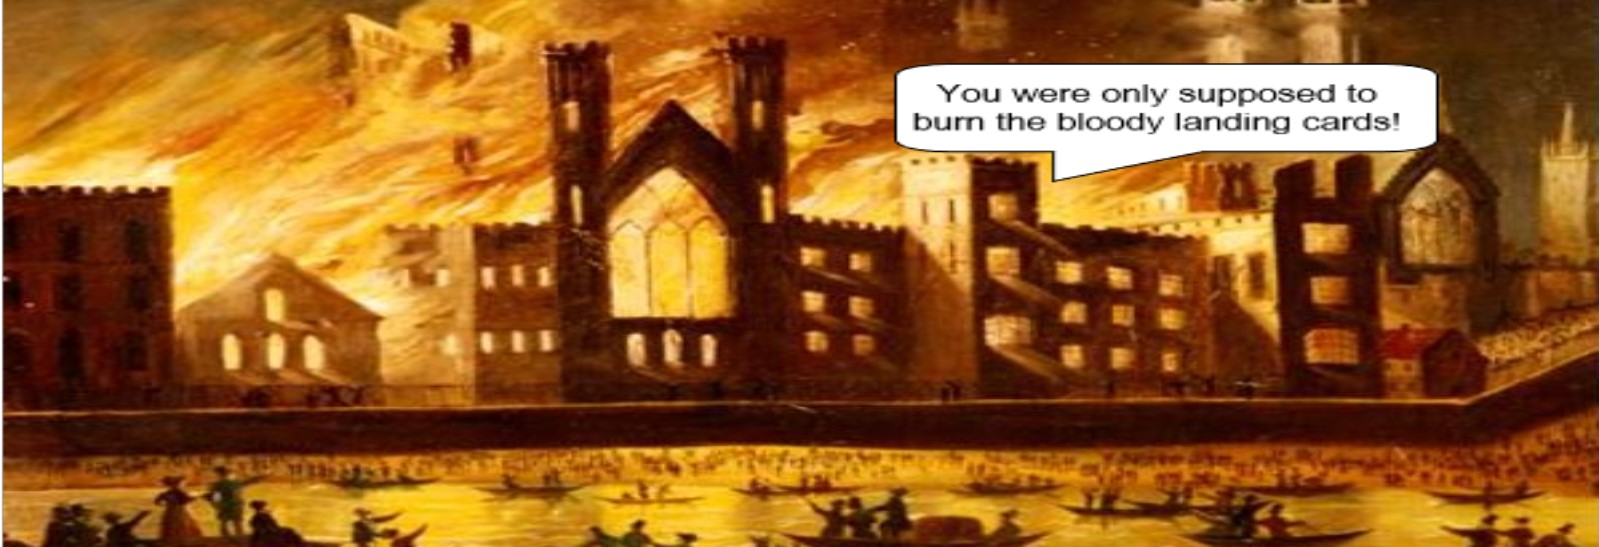 The_Palace_of_Westminster_on_Fire,_1834 Header 2